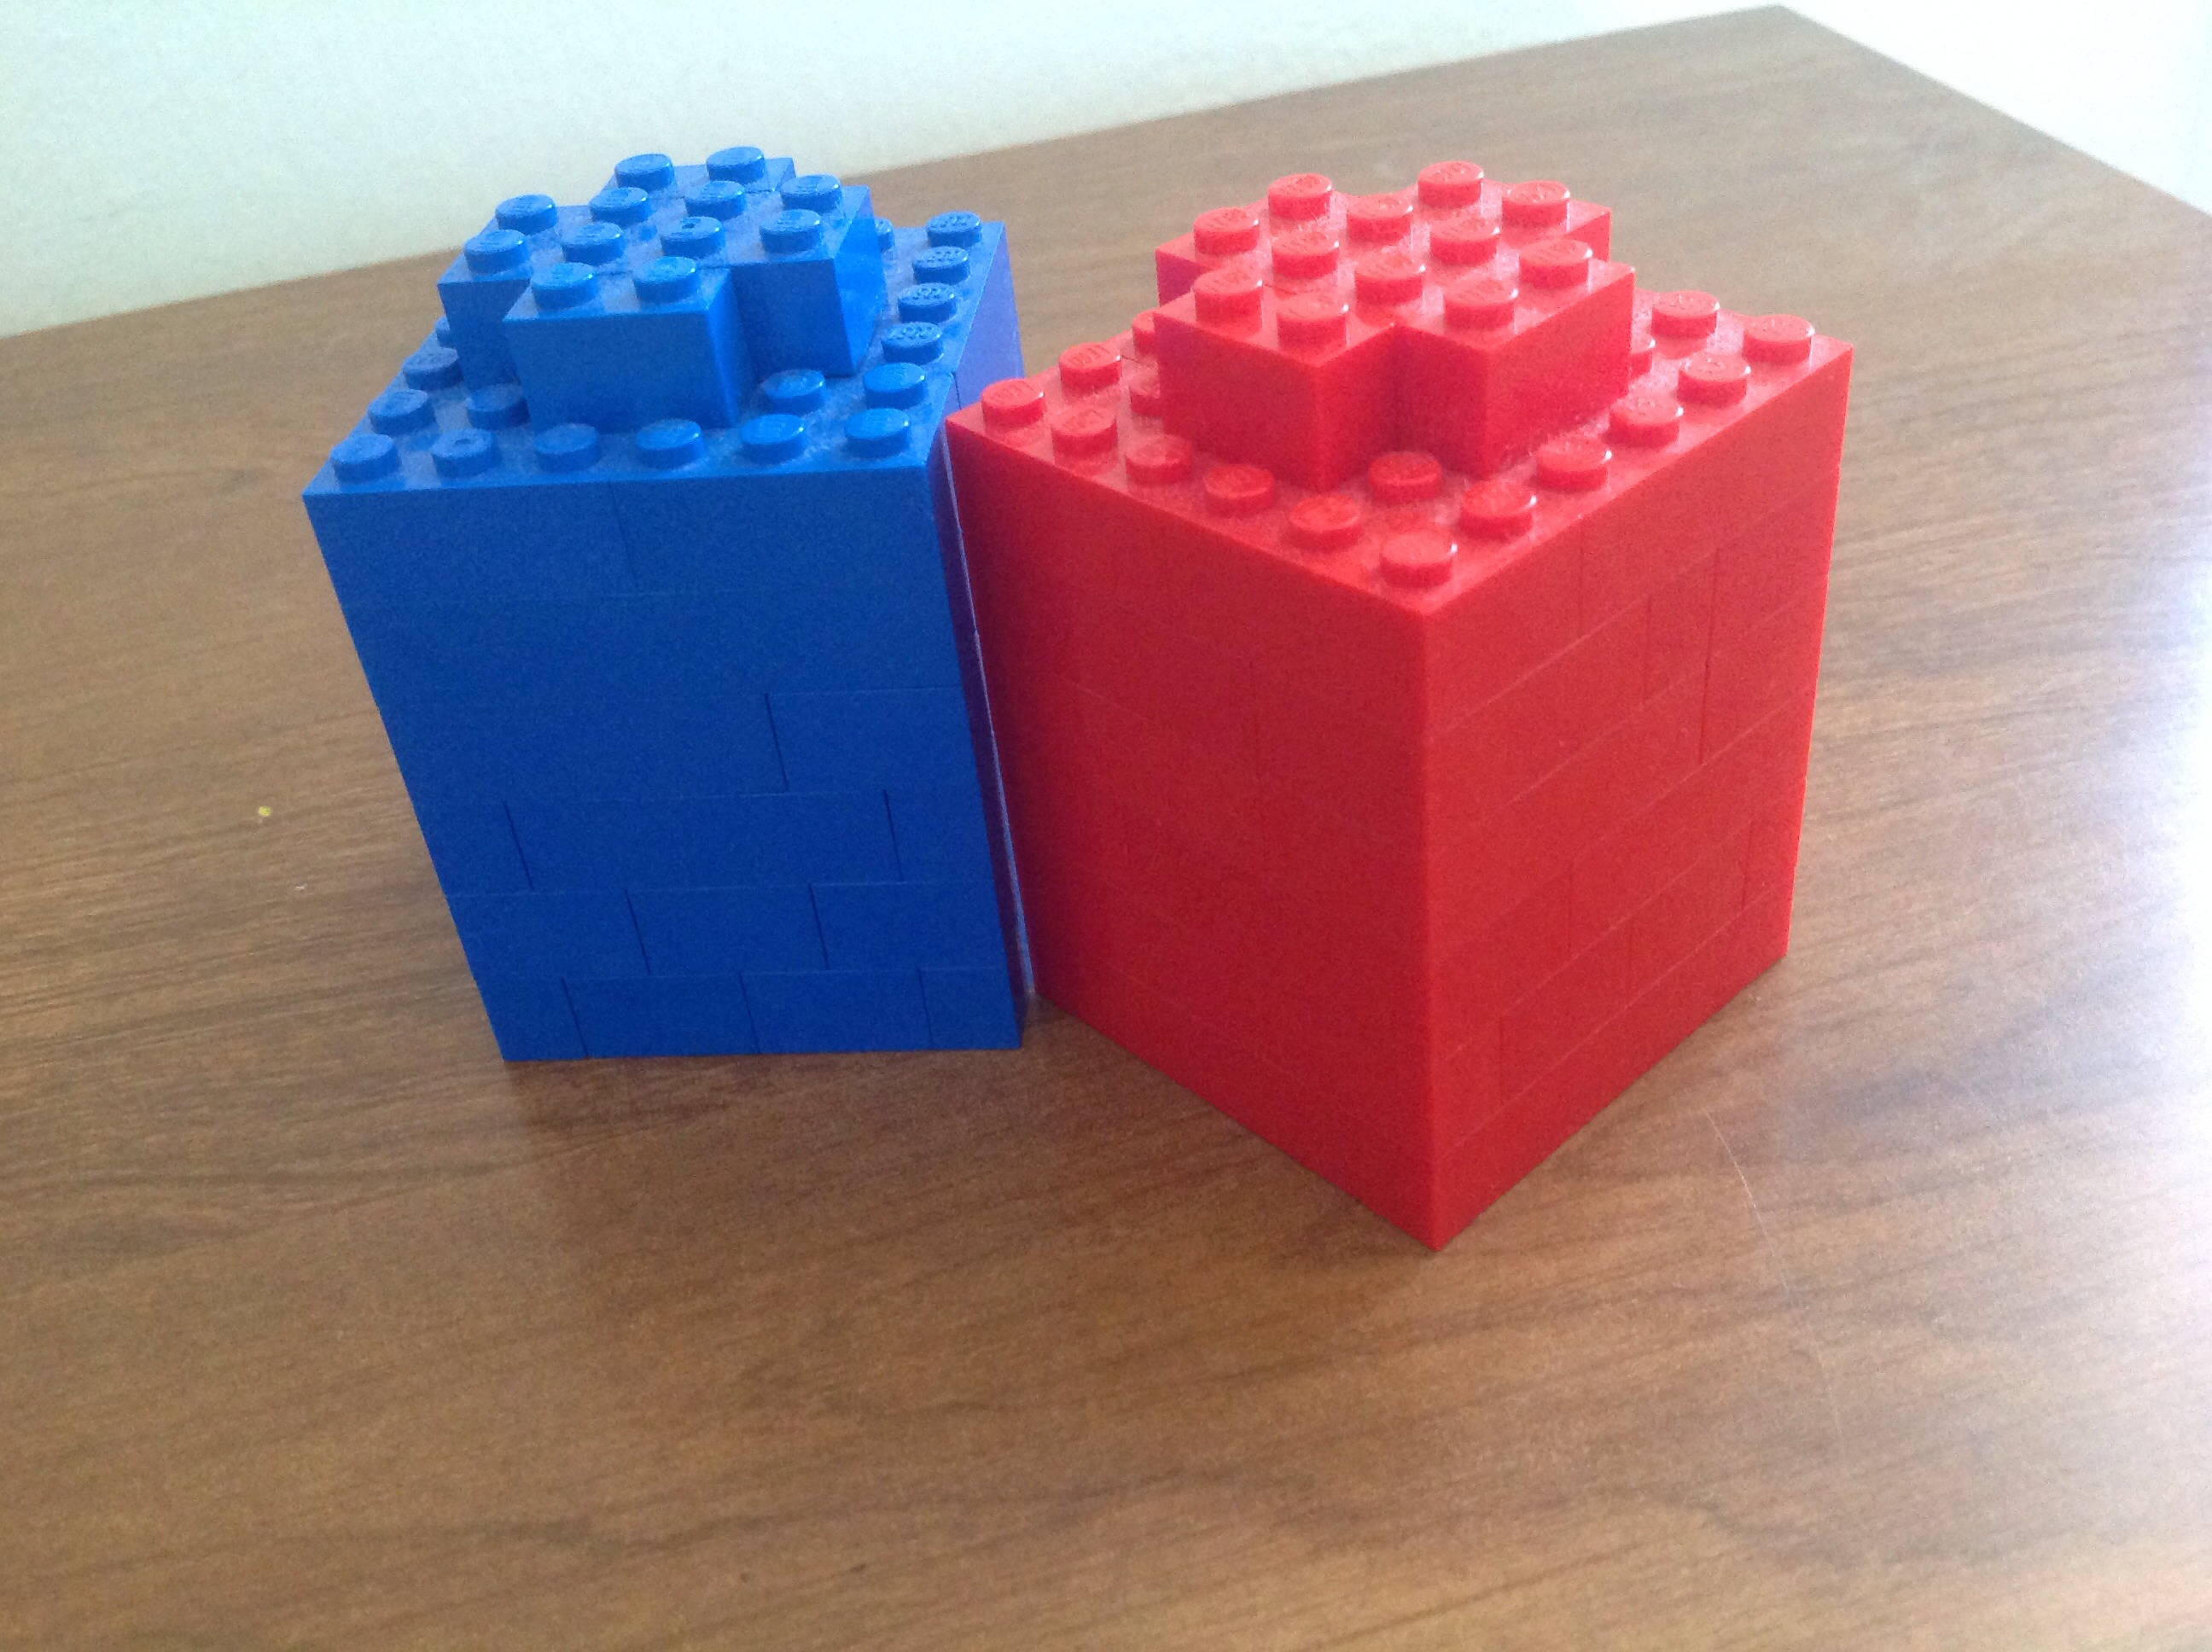 Larger Than Life Lego 1x1 Bricks